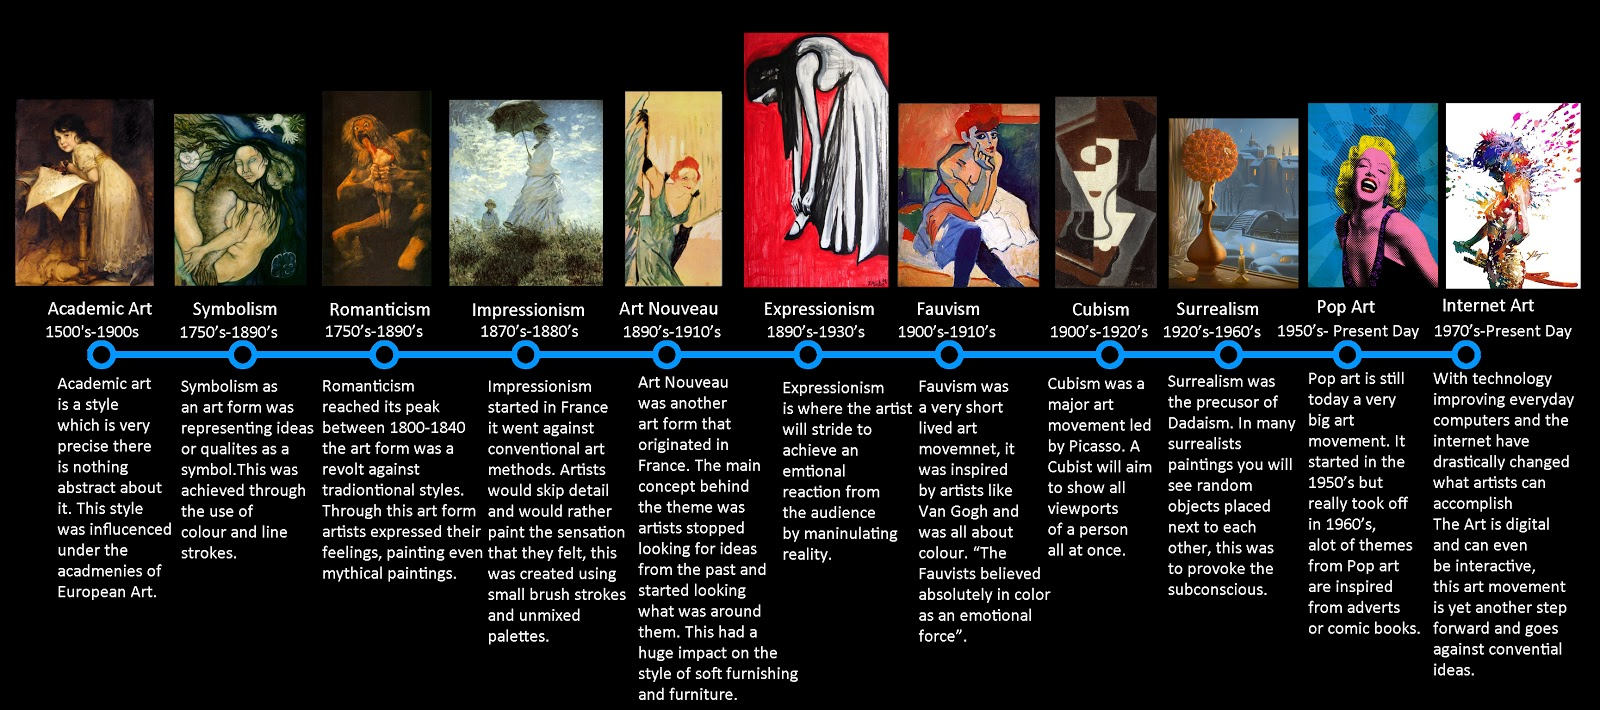 Mcnallys art classes art 2 art history and assignments this timeline generally outlines our study in art ii altavistaventures